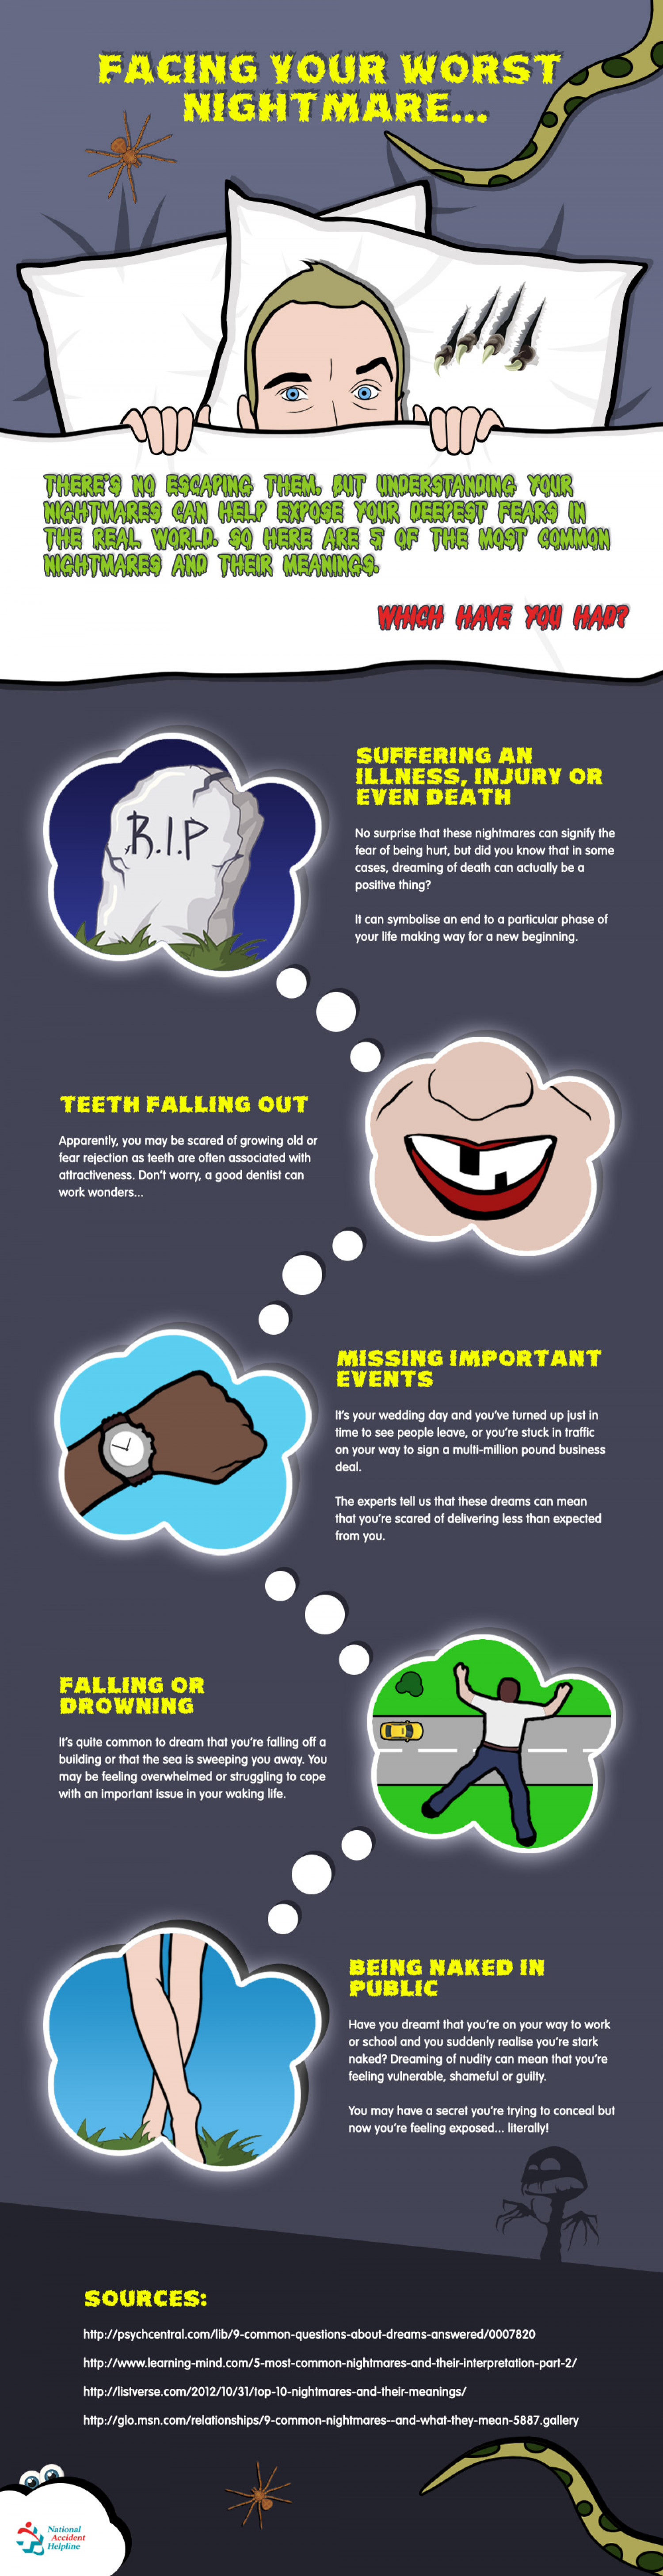 Facing Your Worst Nightmare Infographic